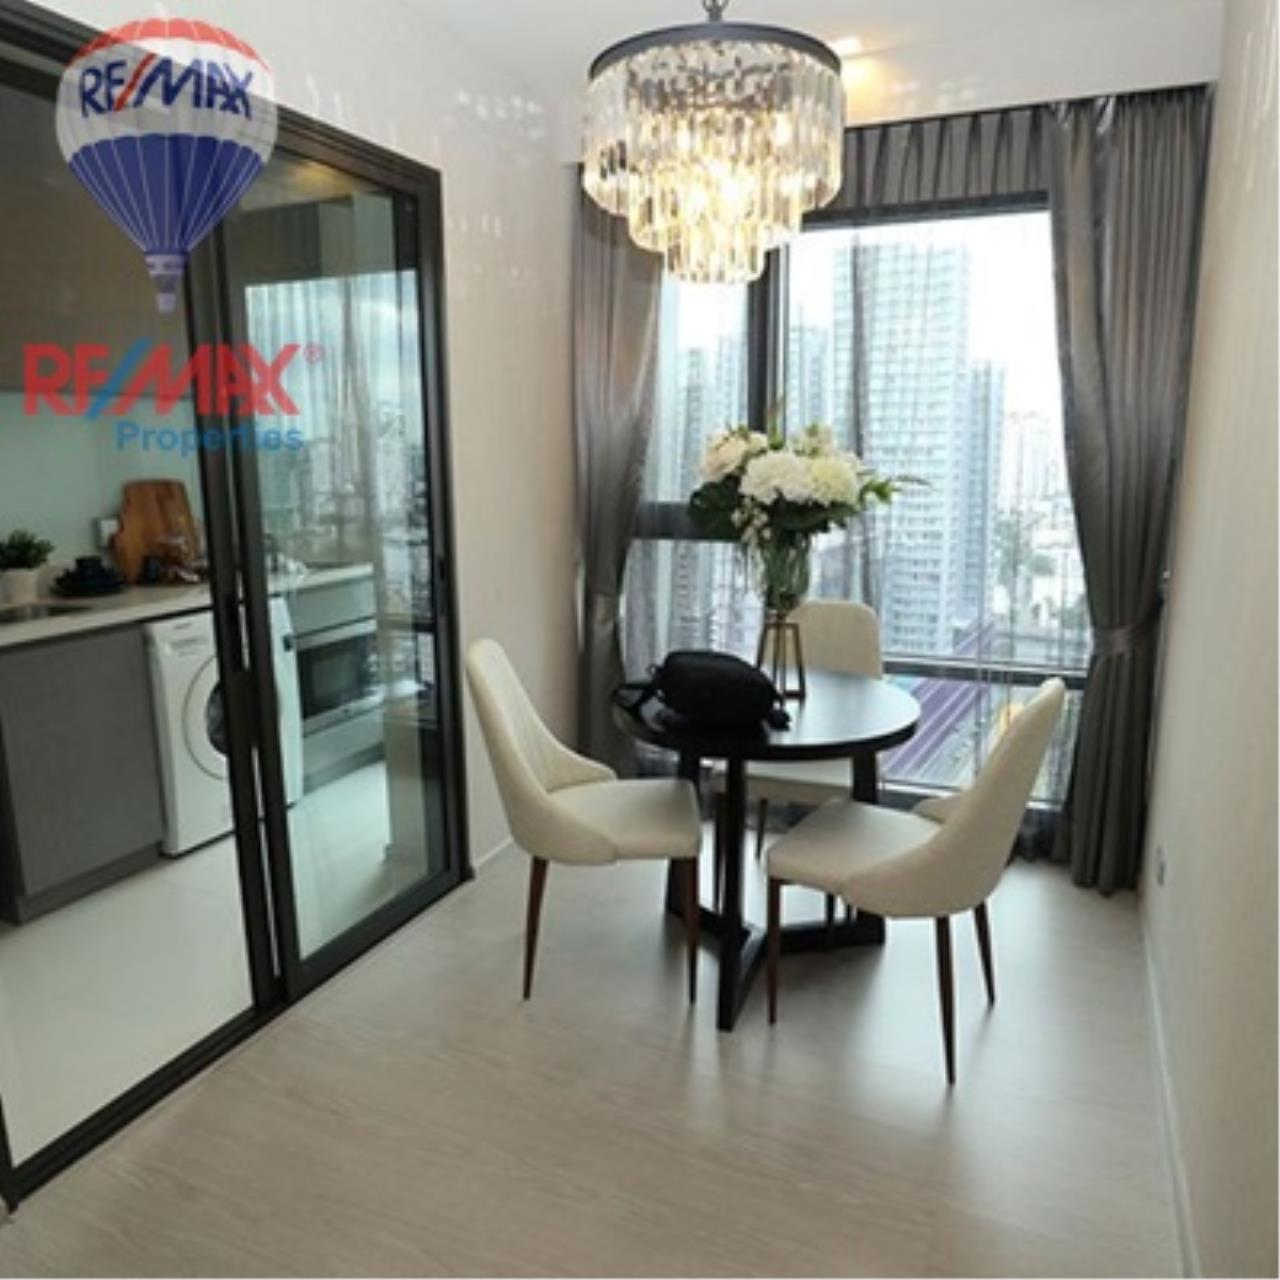 RE/MAX Properties Agency's FOR SALE - RHYTHM SUKHUMVIT 36-38 1 BED 33 SQM  1